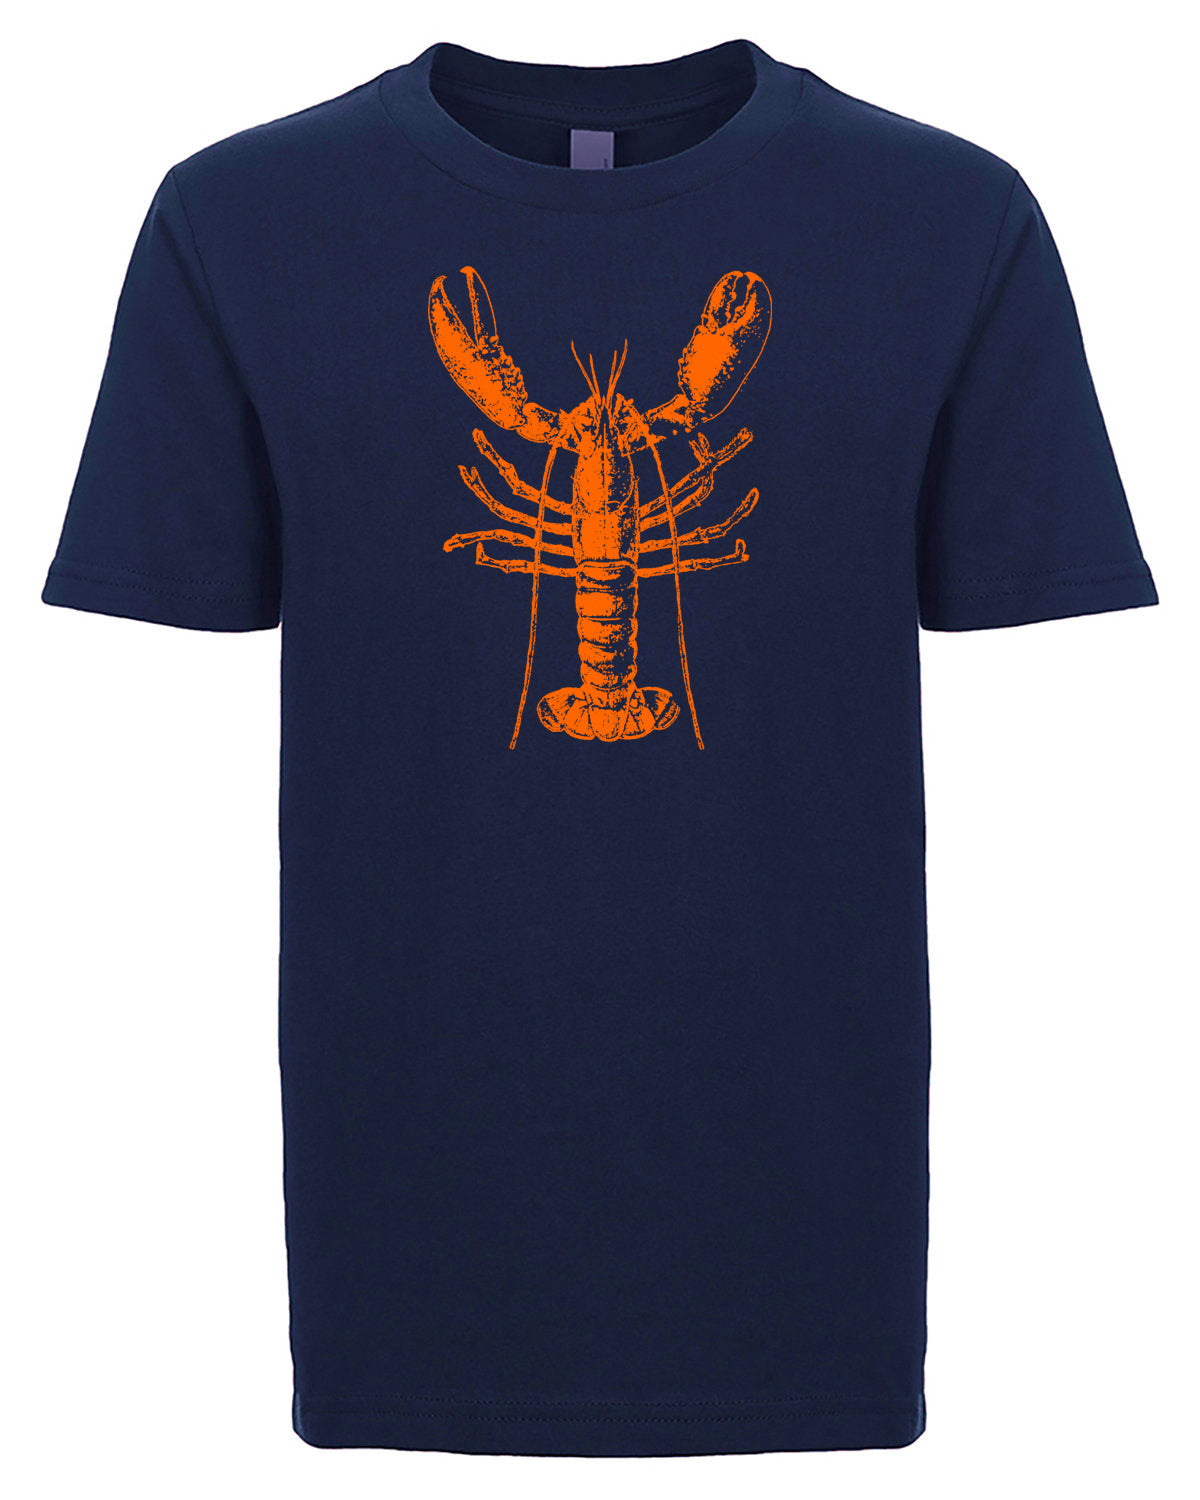 Lobster Youth Shirt